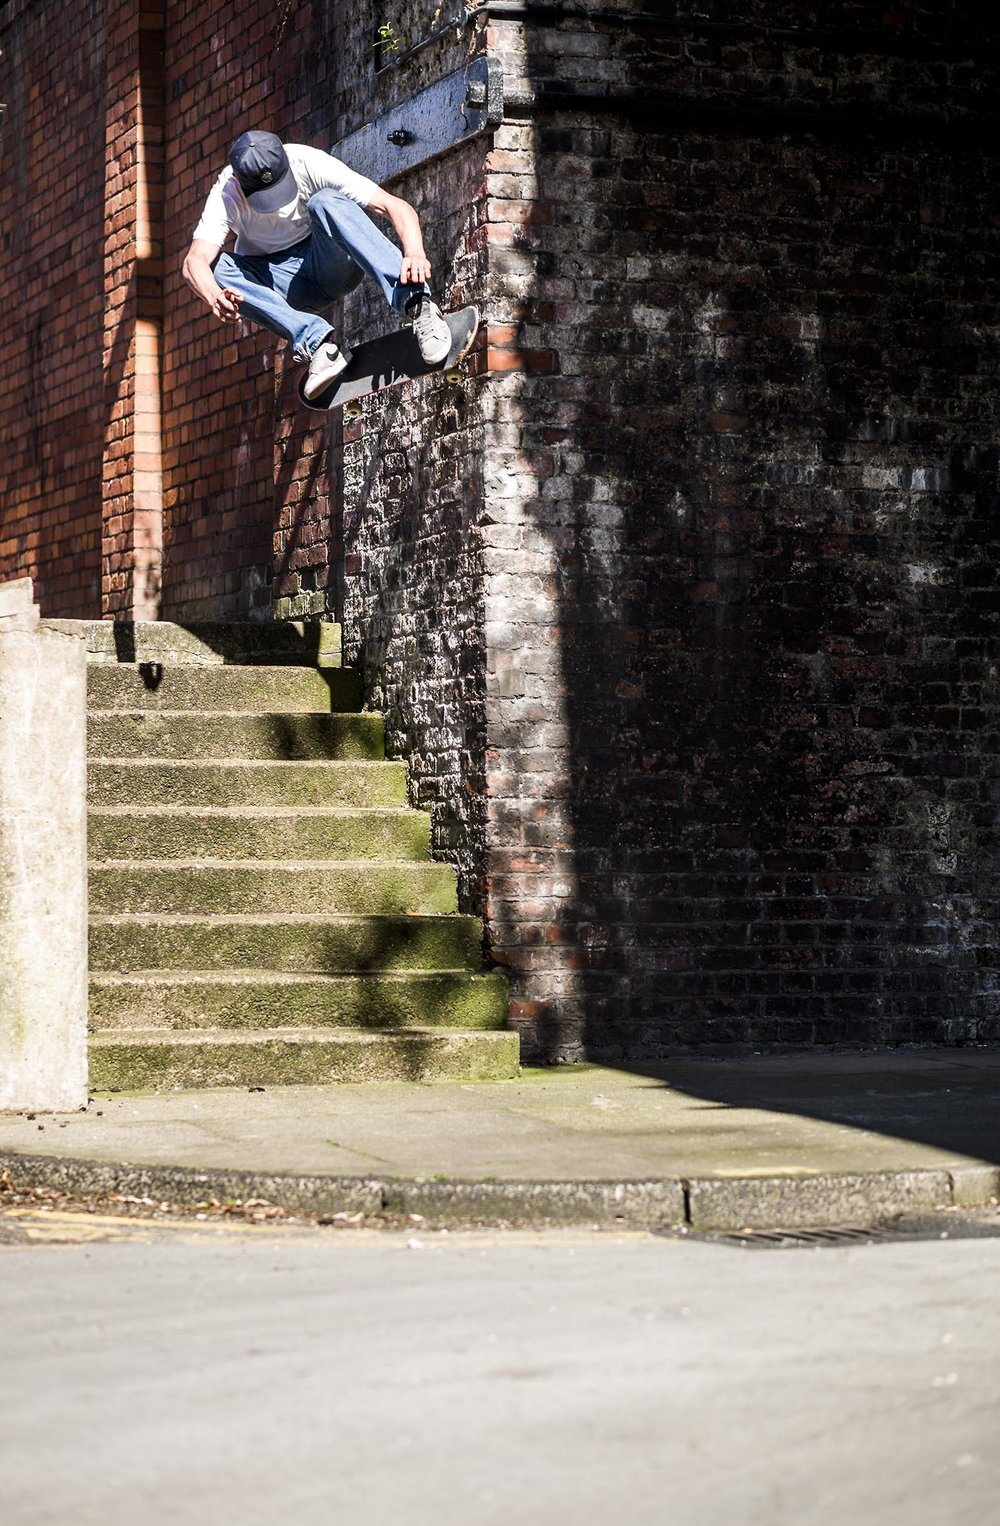 Charlie Birch - wallride nollie